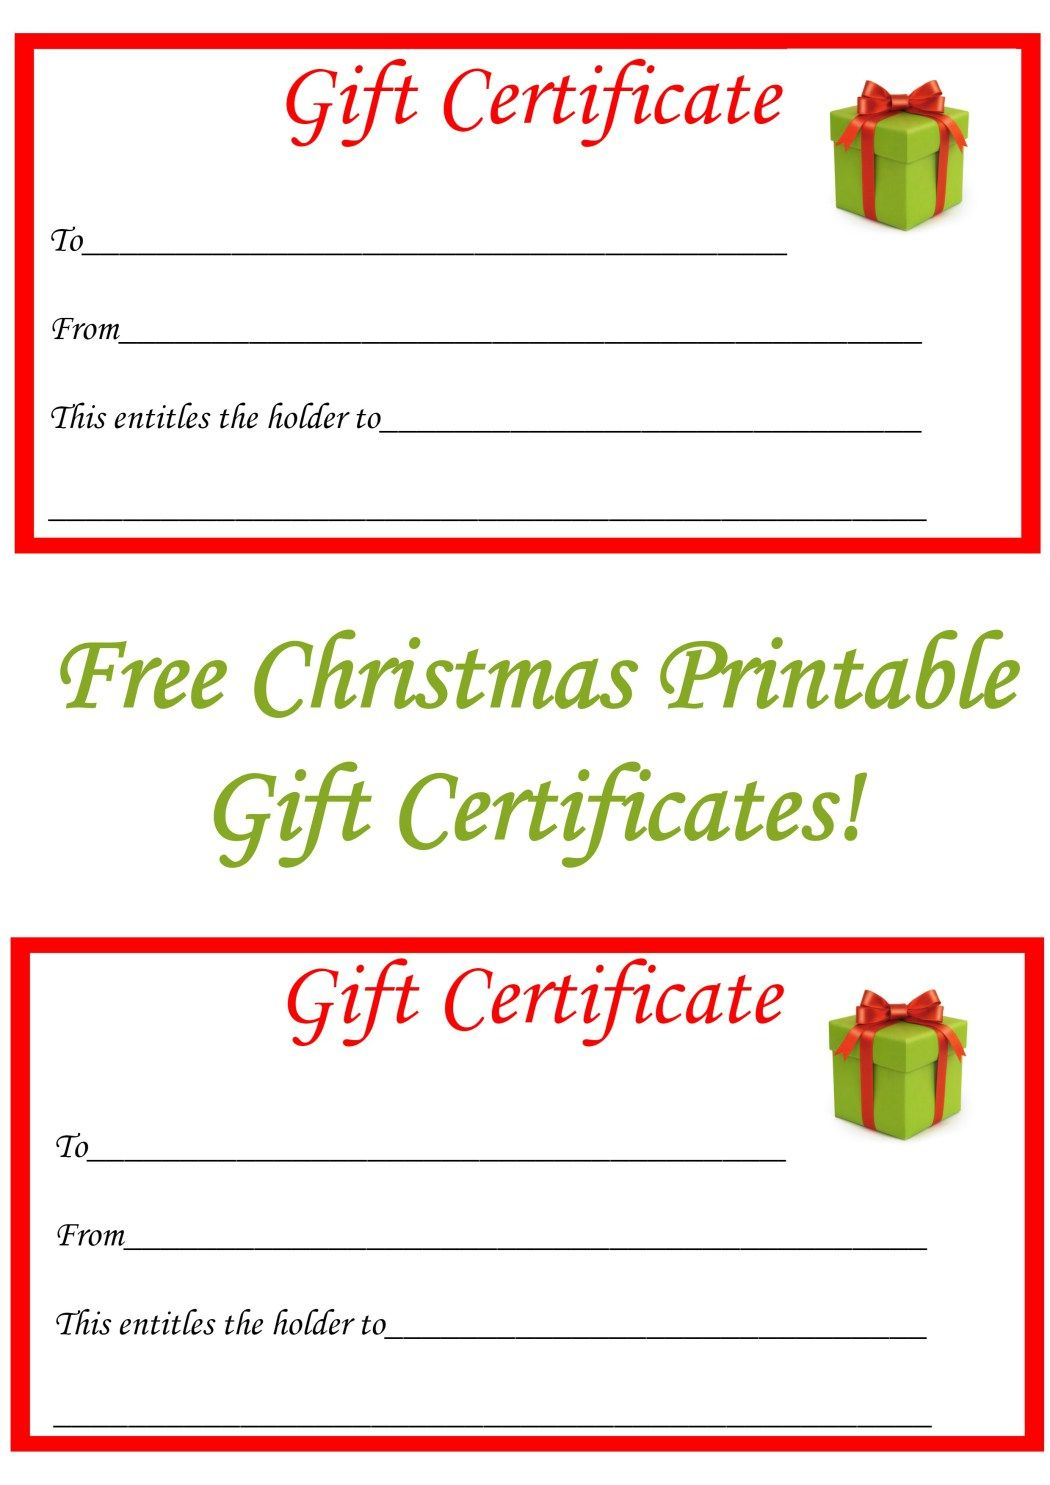 create a coupon template free - best 25 printable gift certificates ideas on pinterest